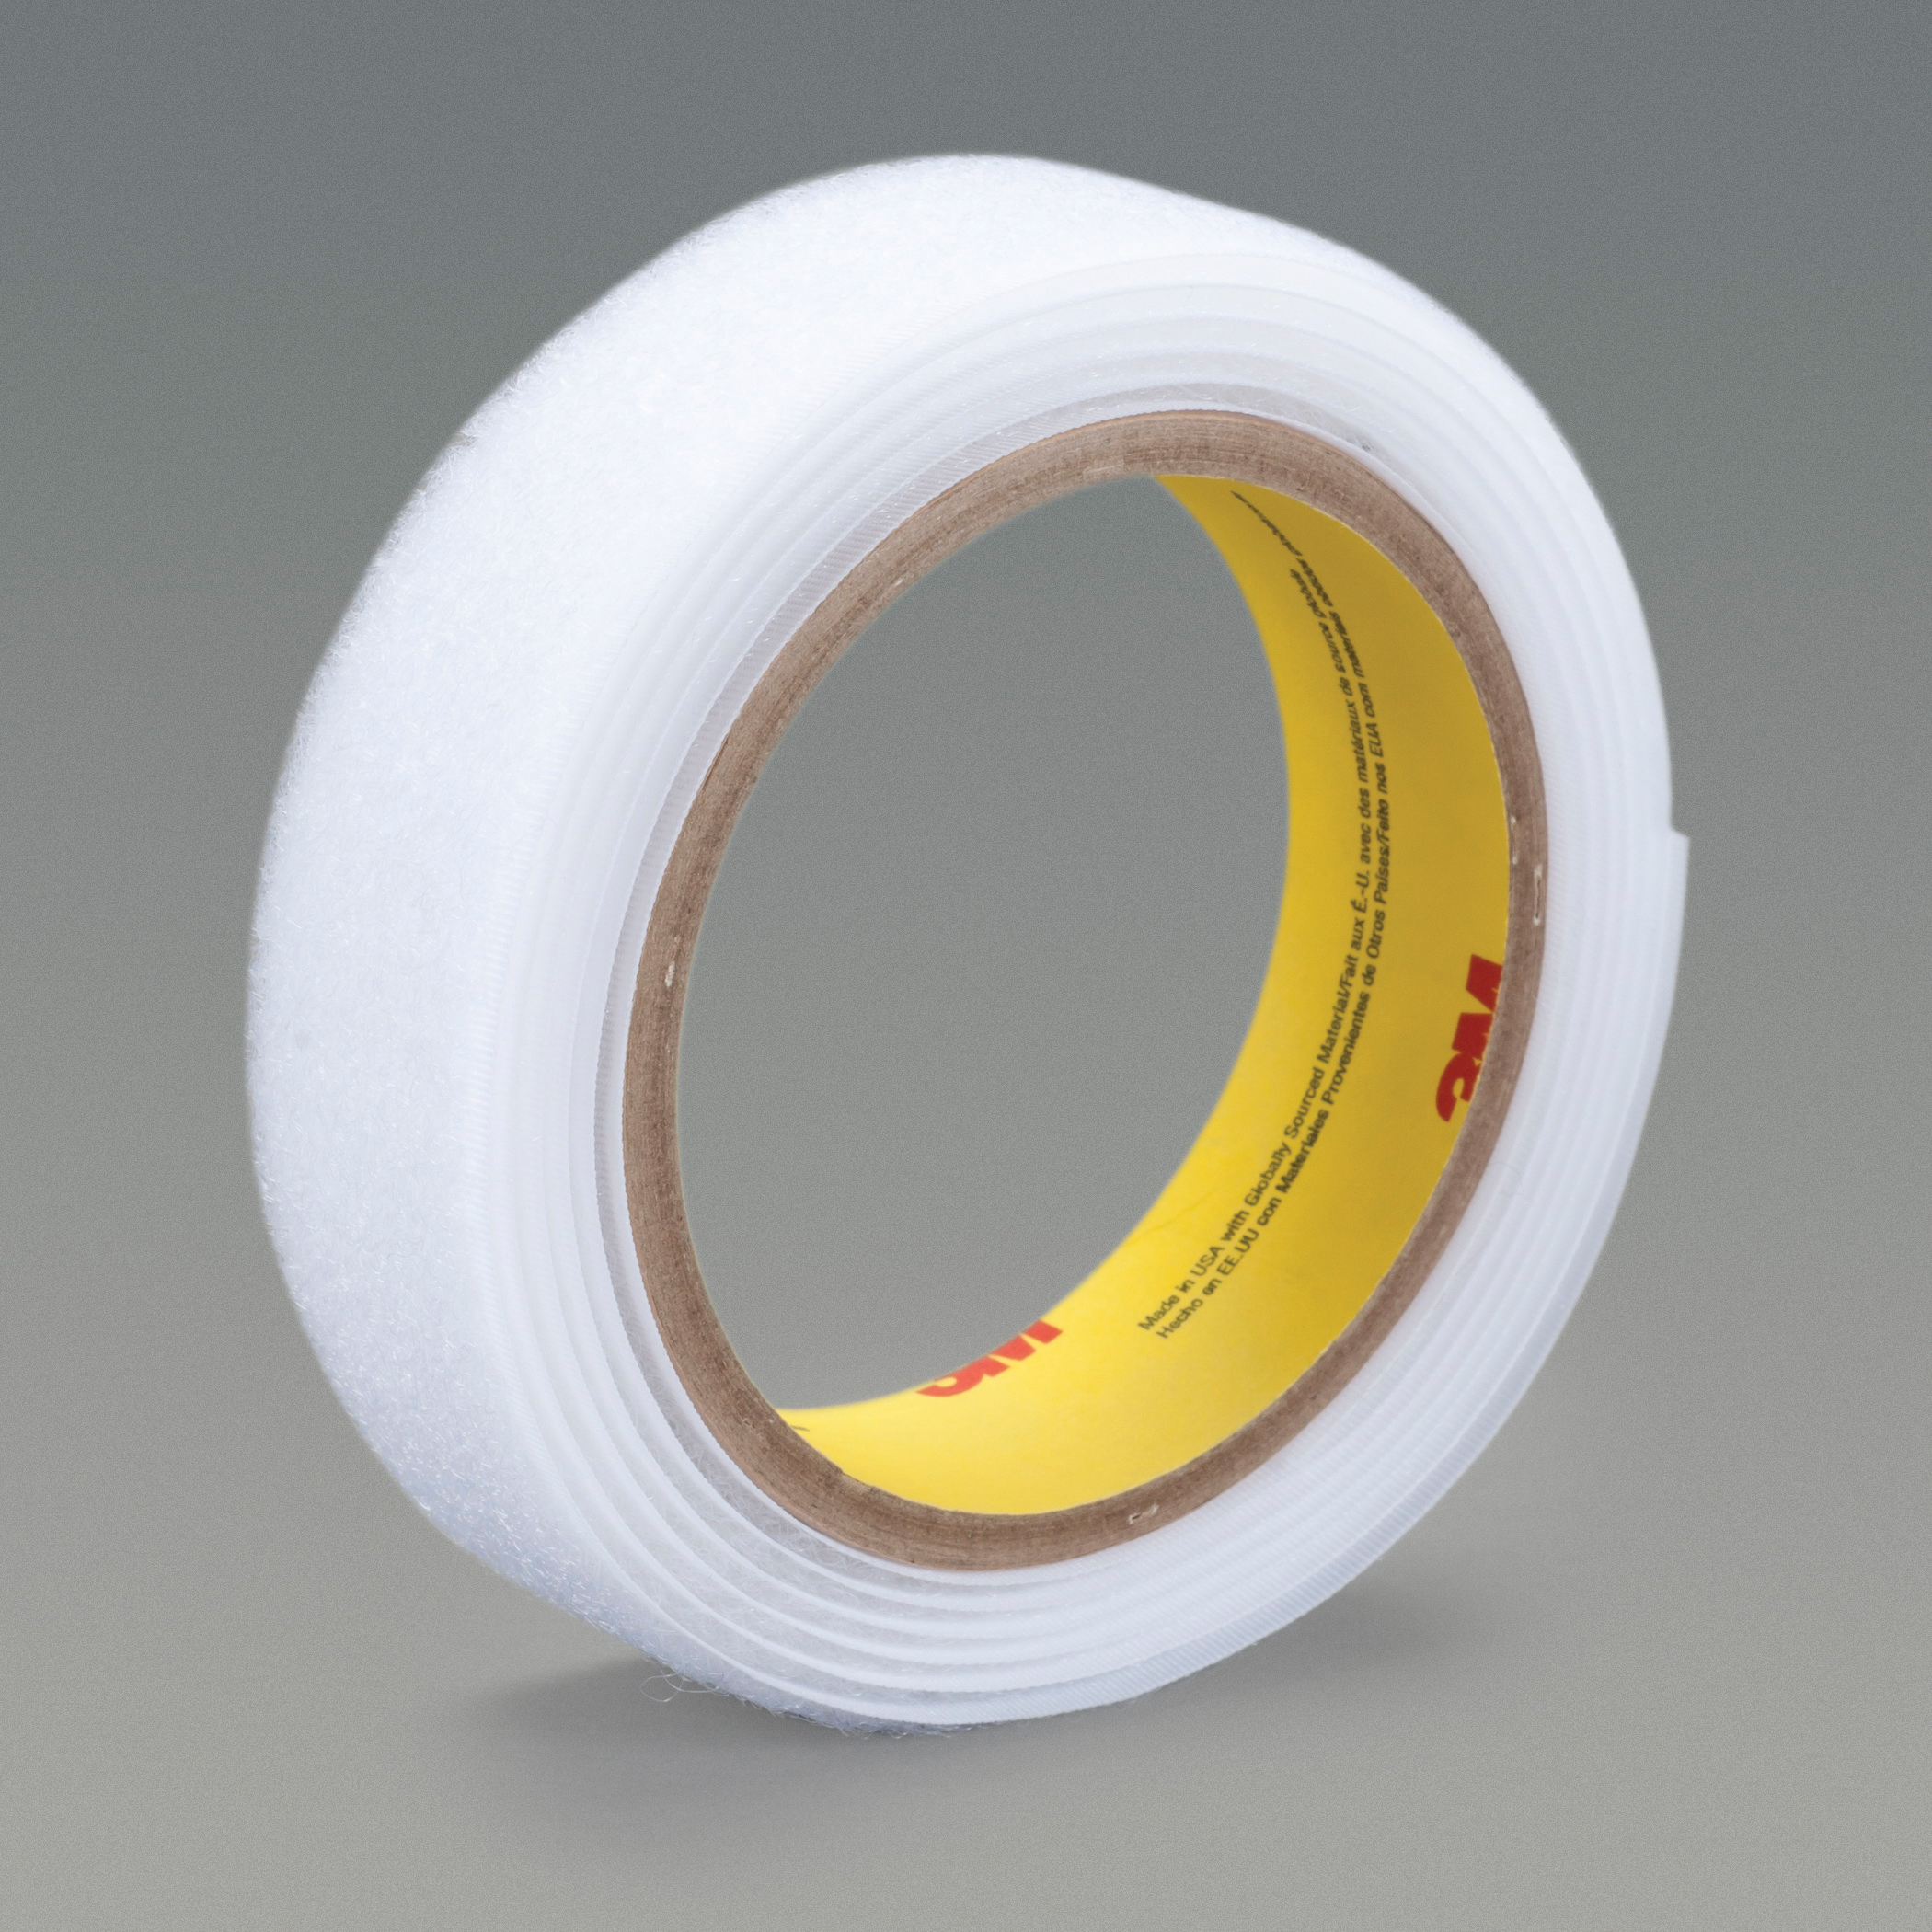 3M™ 021200-86404 Reclosable Loop Fastener Tape, 50 yd L x 2 in W, 0.15 in THK Engaged, Acrylic Adhesive, Woven Nylon Backing, White